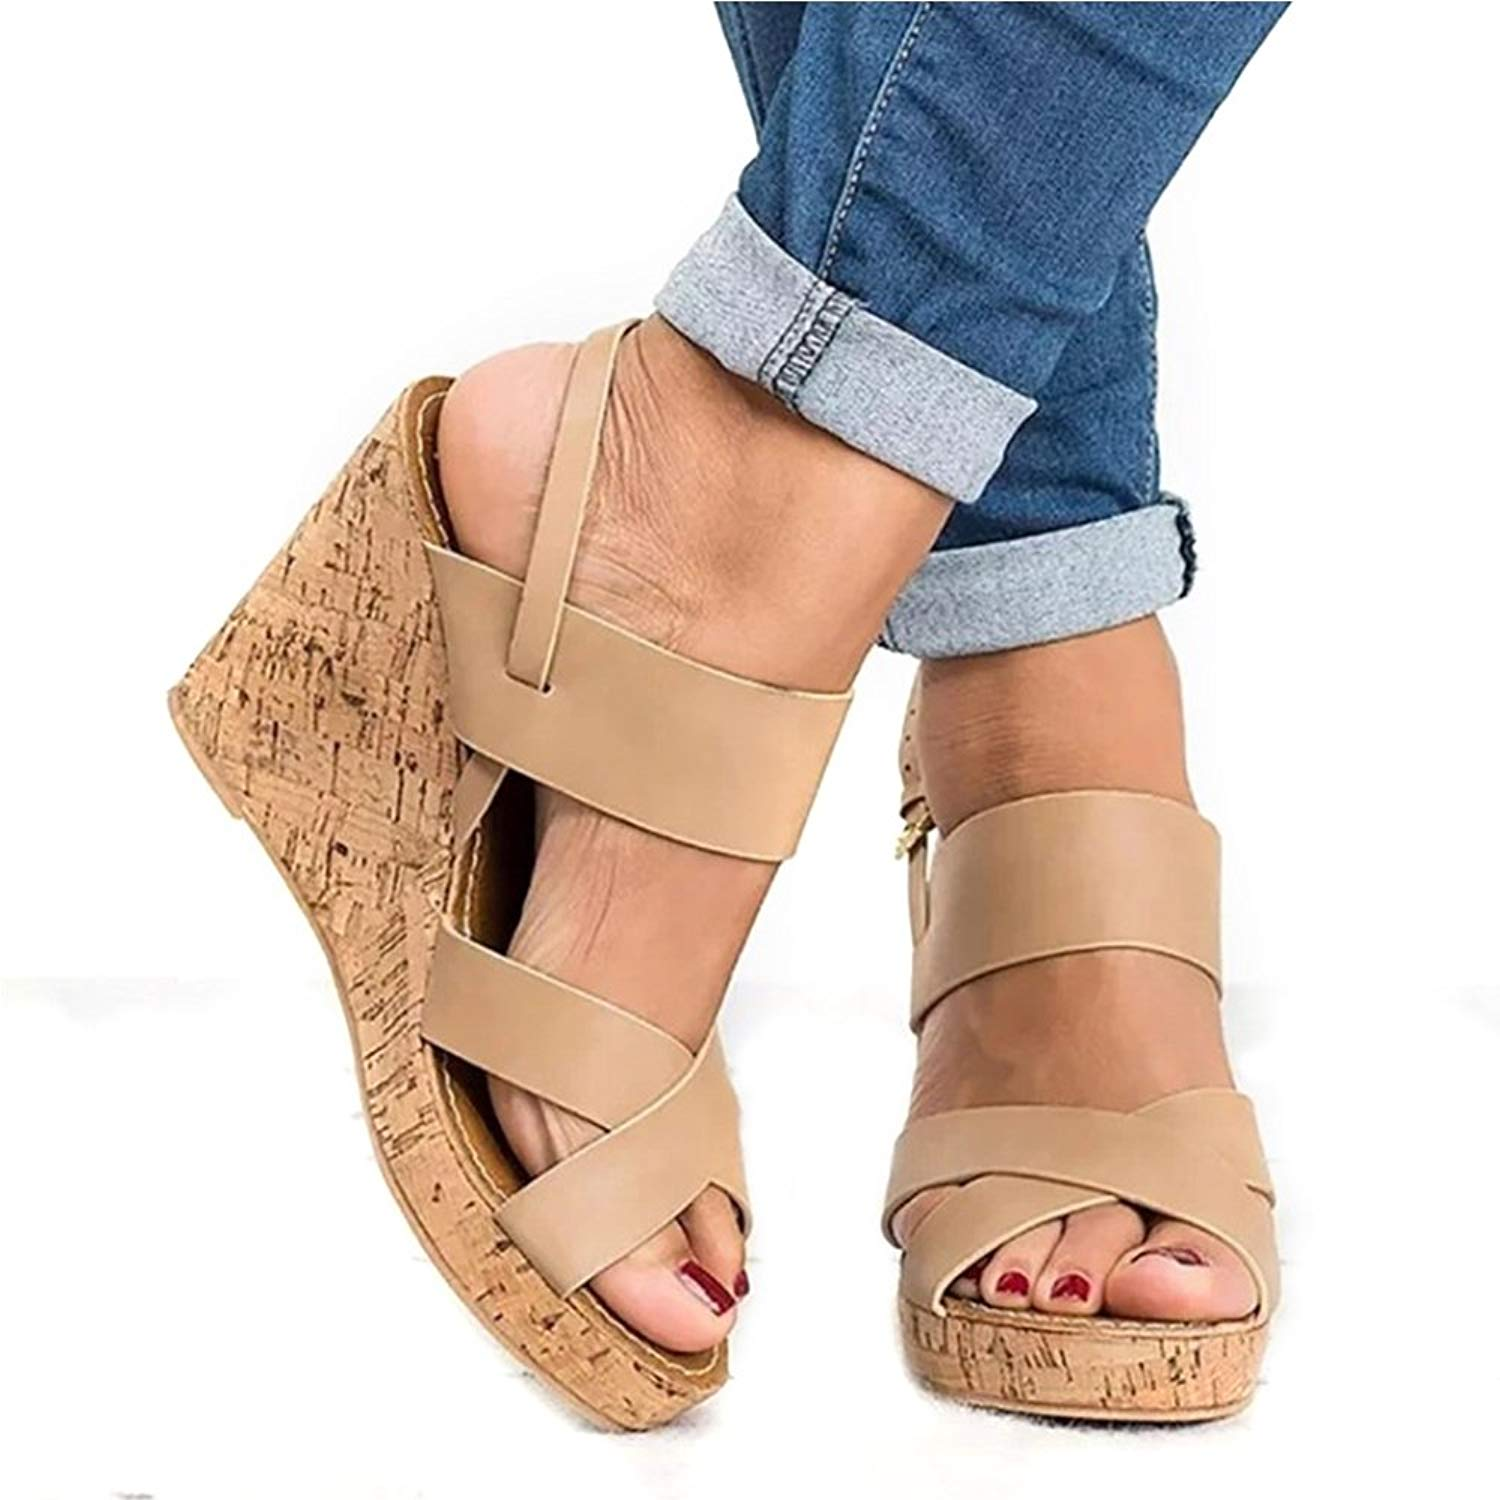 YING LAN Womens Wedge Sandals Ankle Buckle T Strap Platform Casual Summer Comfort Heeled Shoes